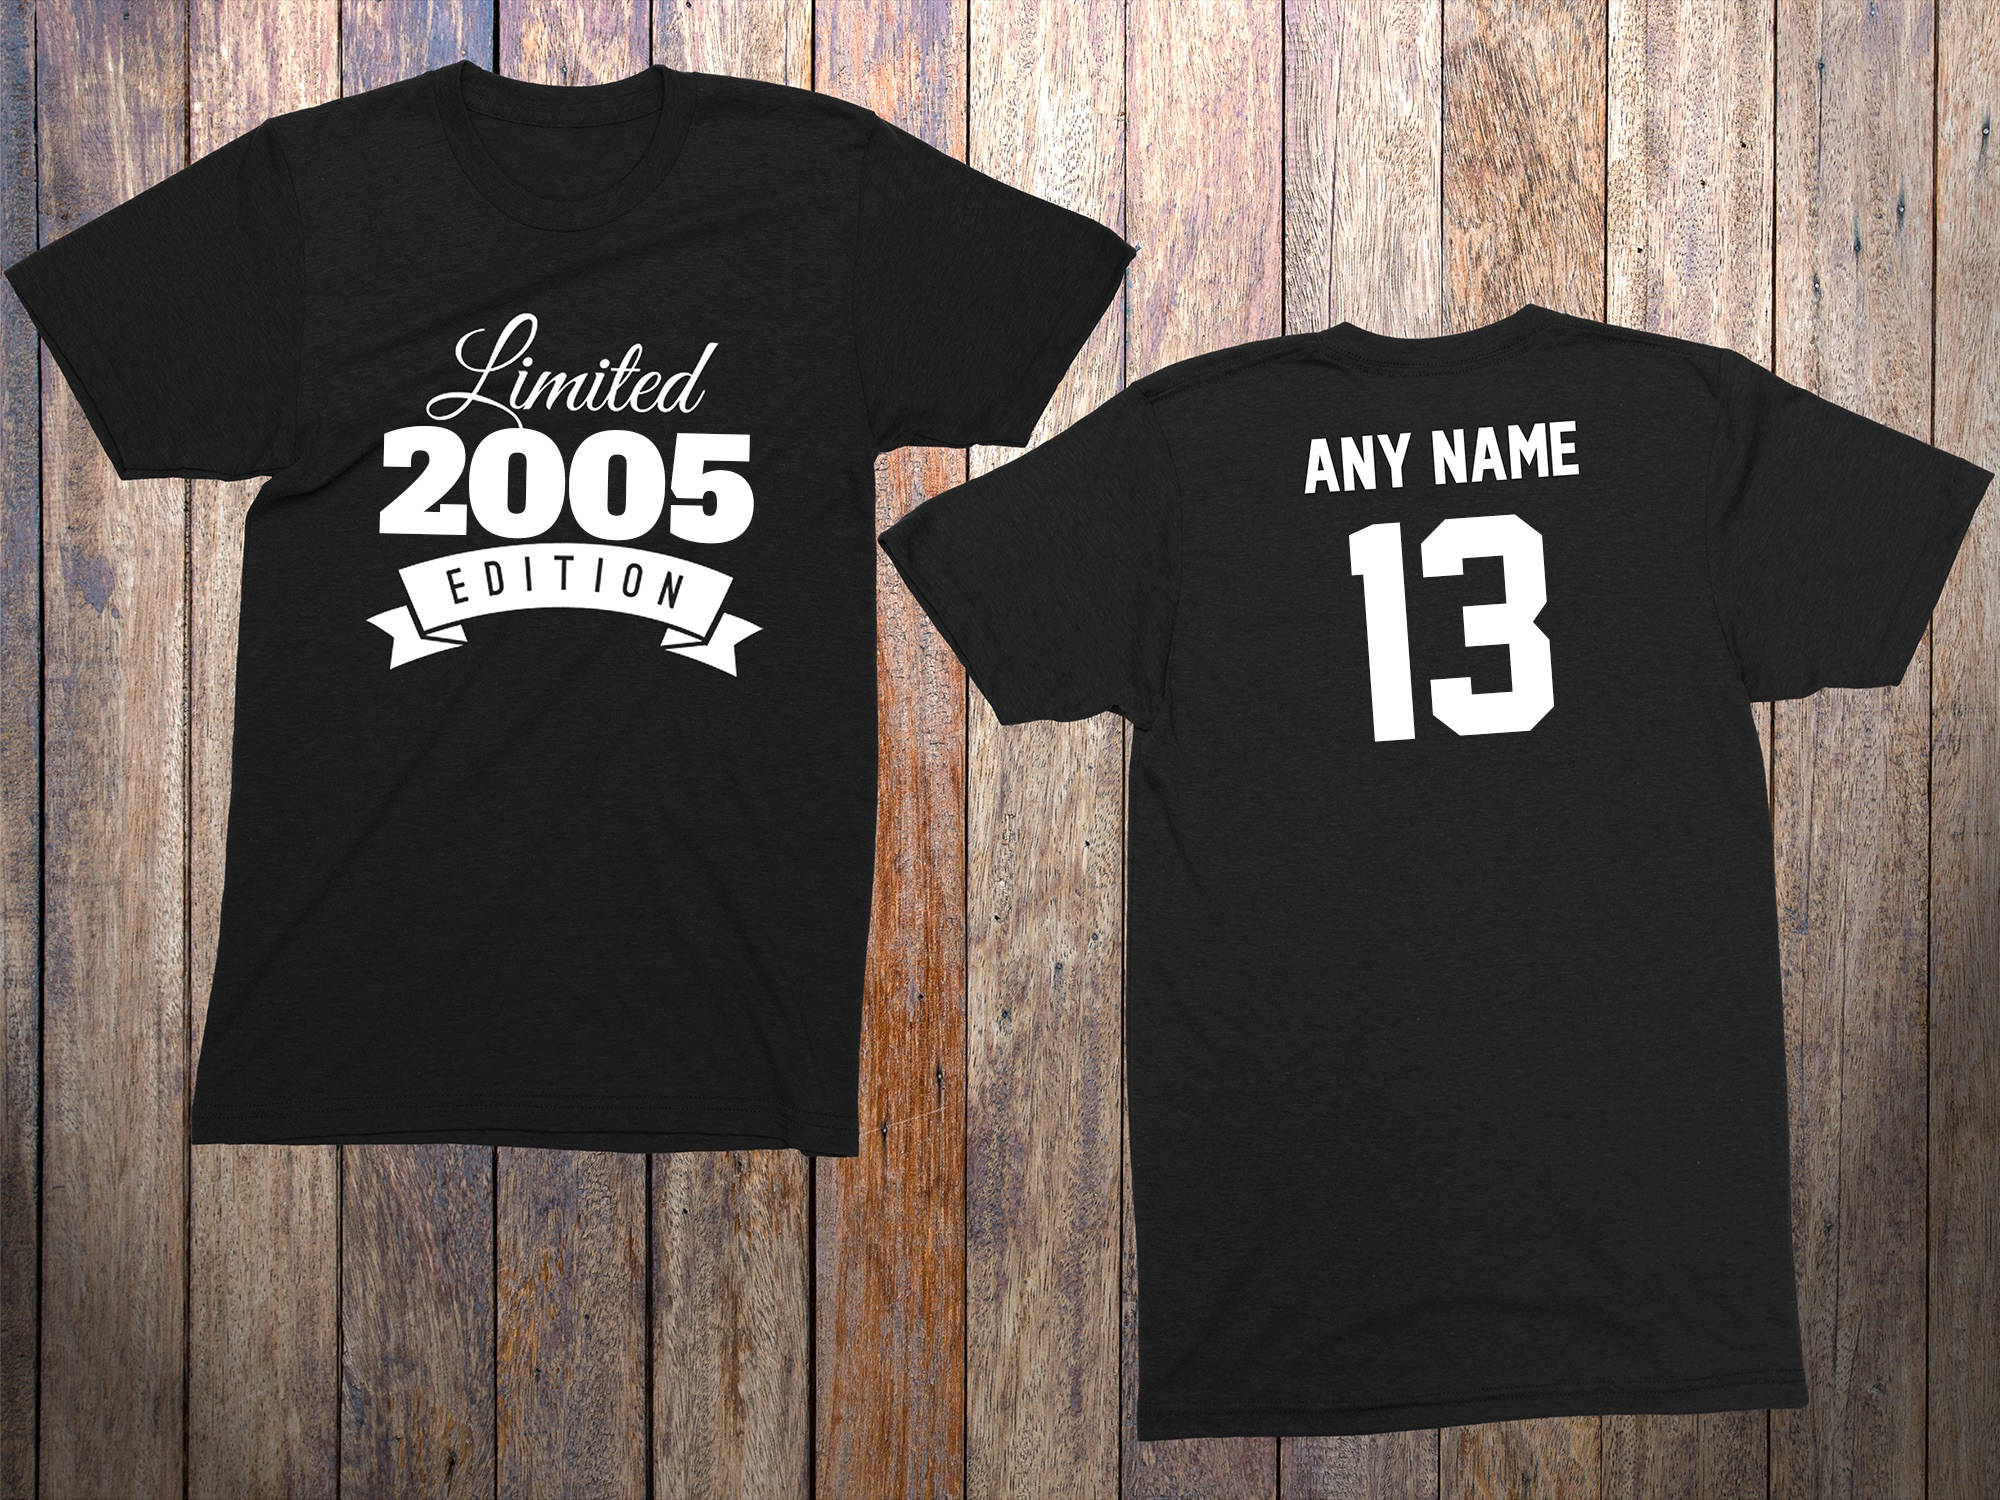 Year Old Birthday Shirt Or Hoodie Kids Limited Edition Youth Celebration